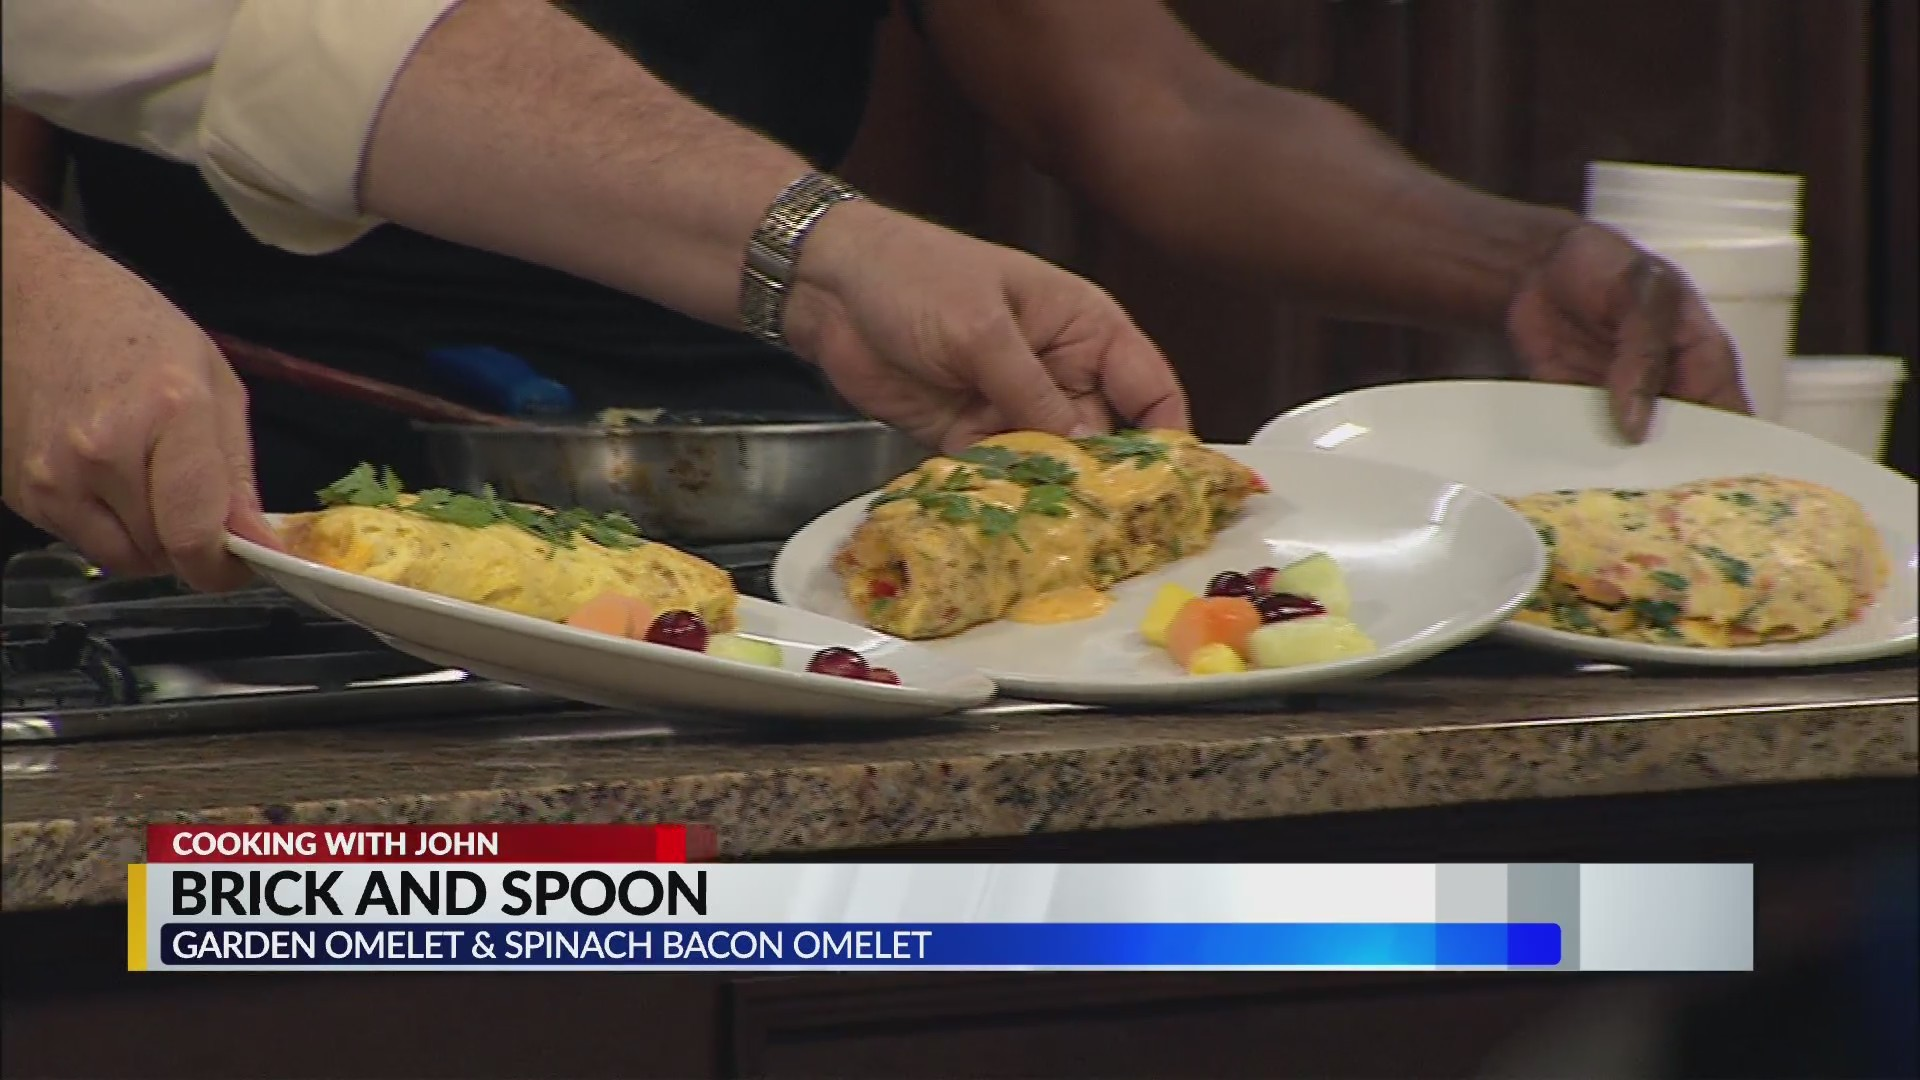 VIDEO: Cooking with John: Brick and Spoon's Garden Omelet & Spinach Bacon Cheese Omelet